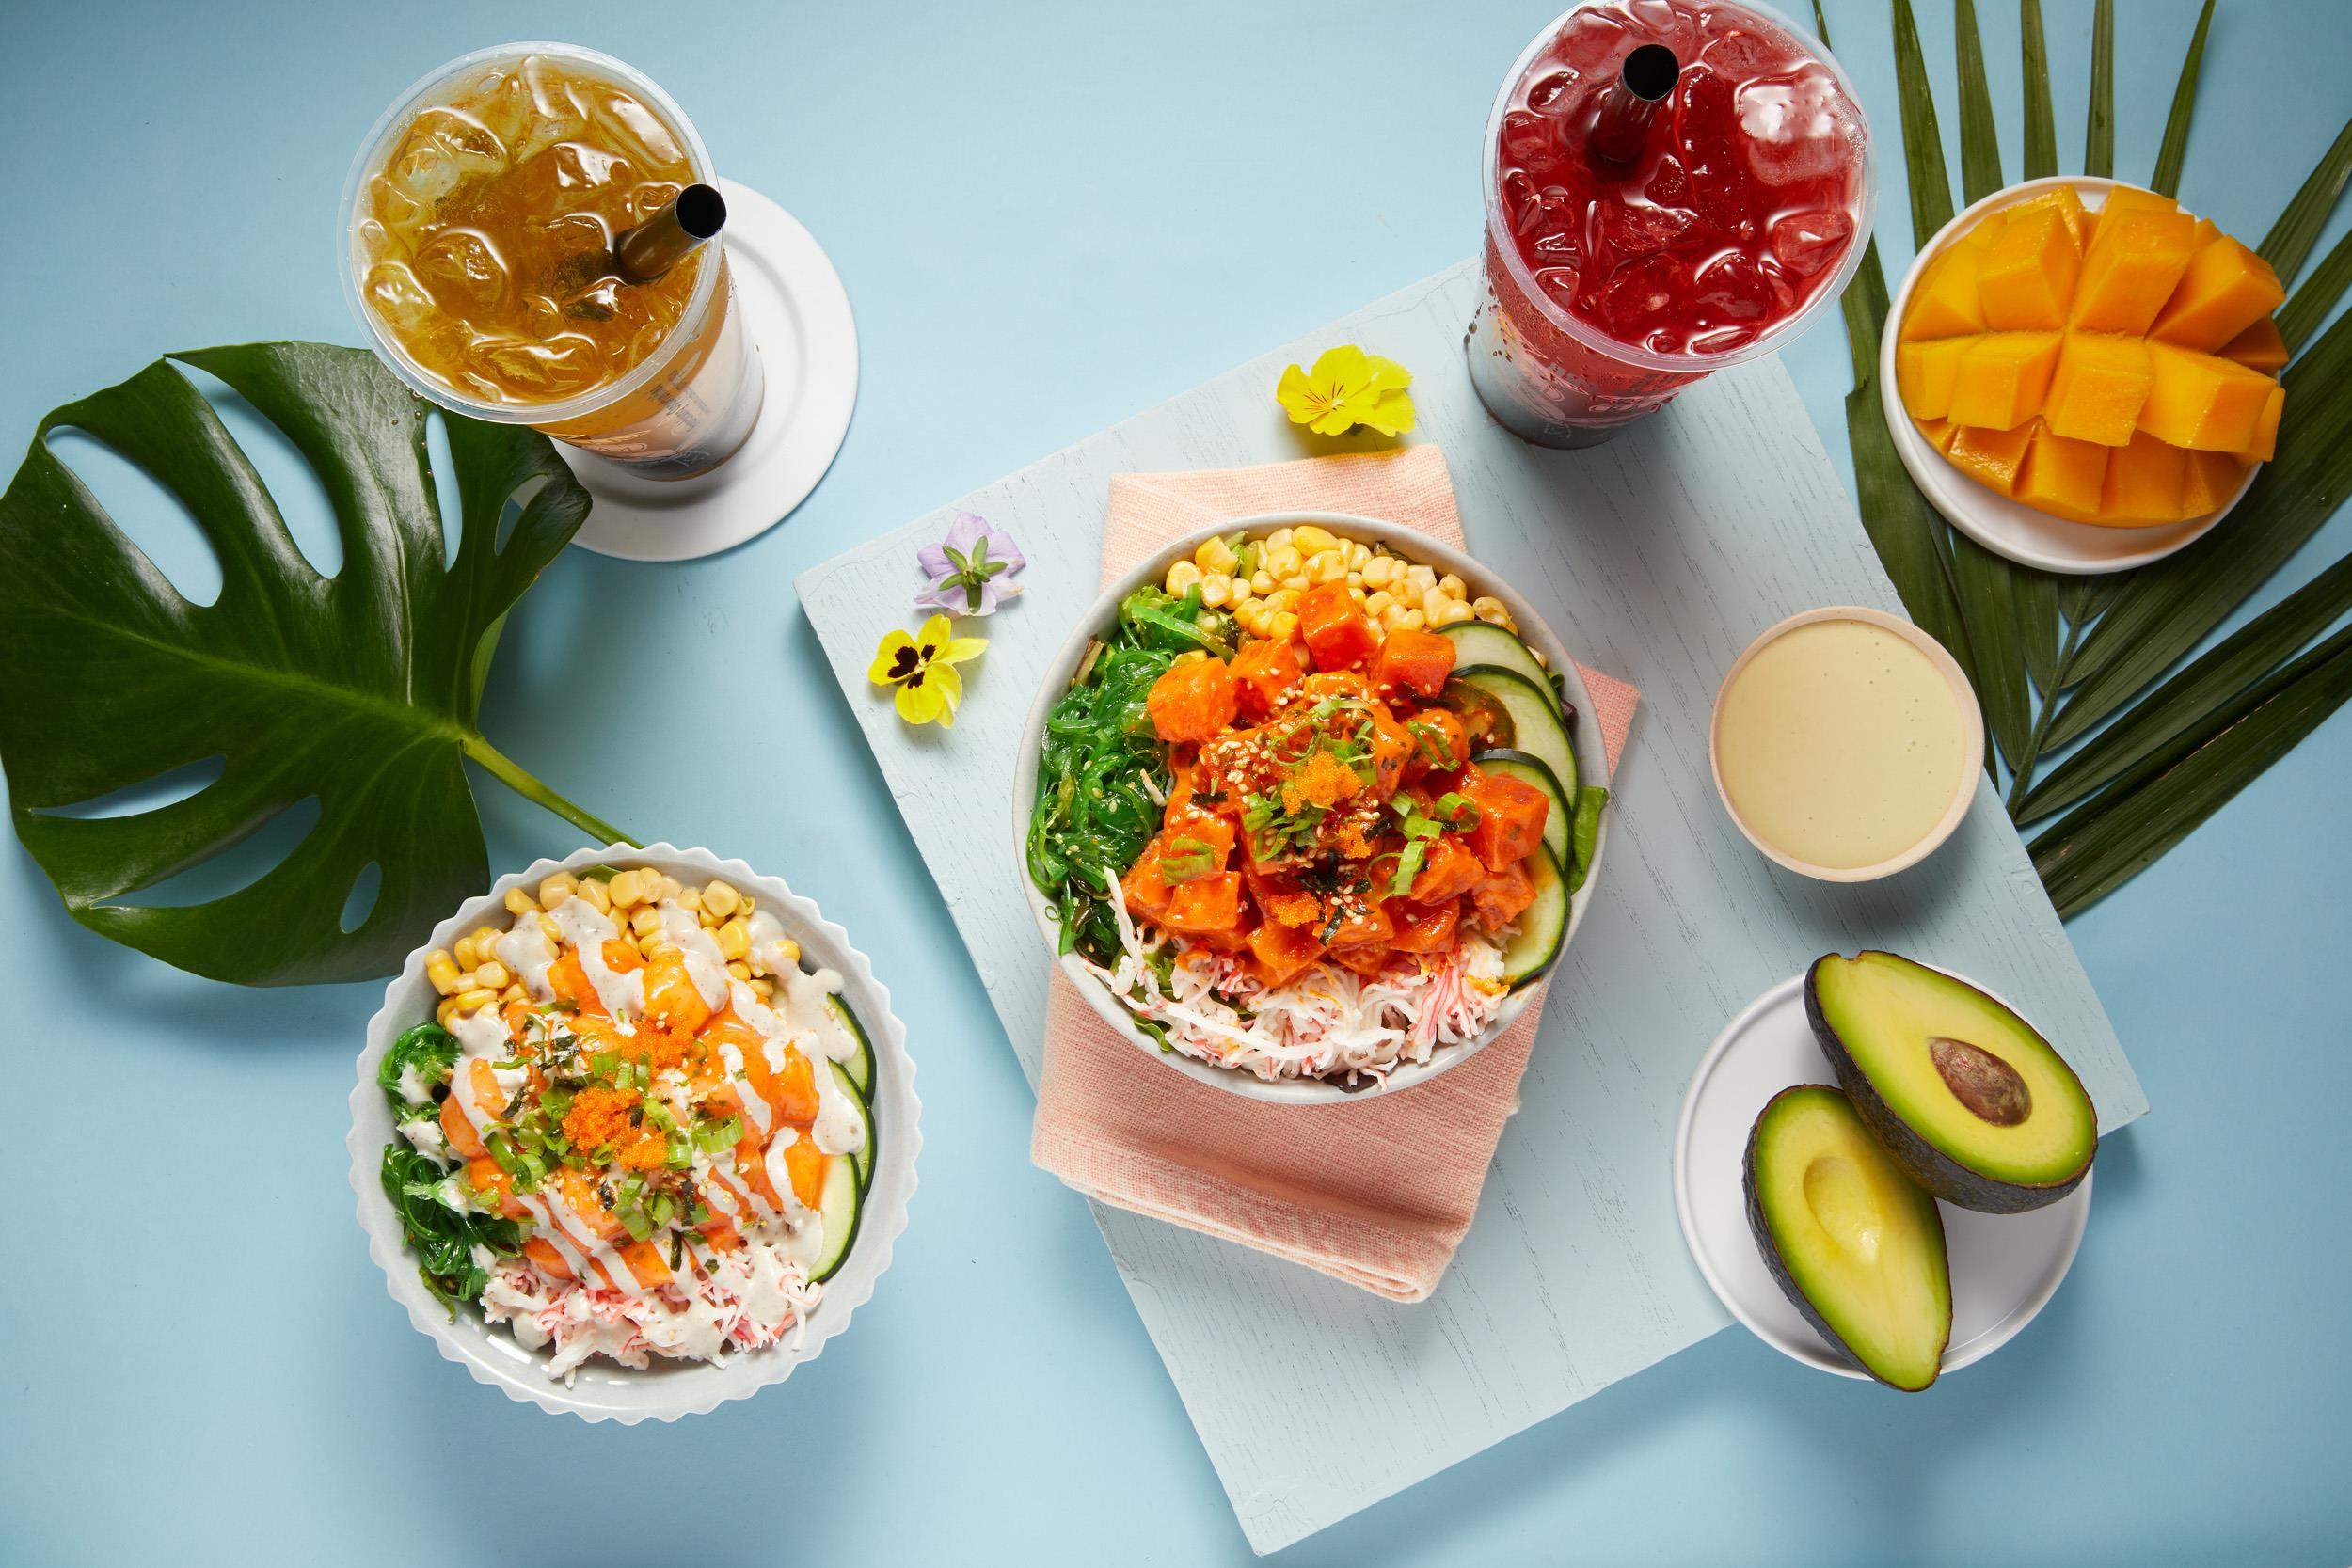 Looking down at a spicy tuna poke bowl, spicy scallop poke bowl, two drinks, a mango, avocado and two large tropical leaves